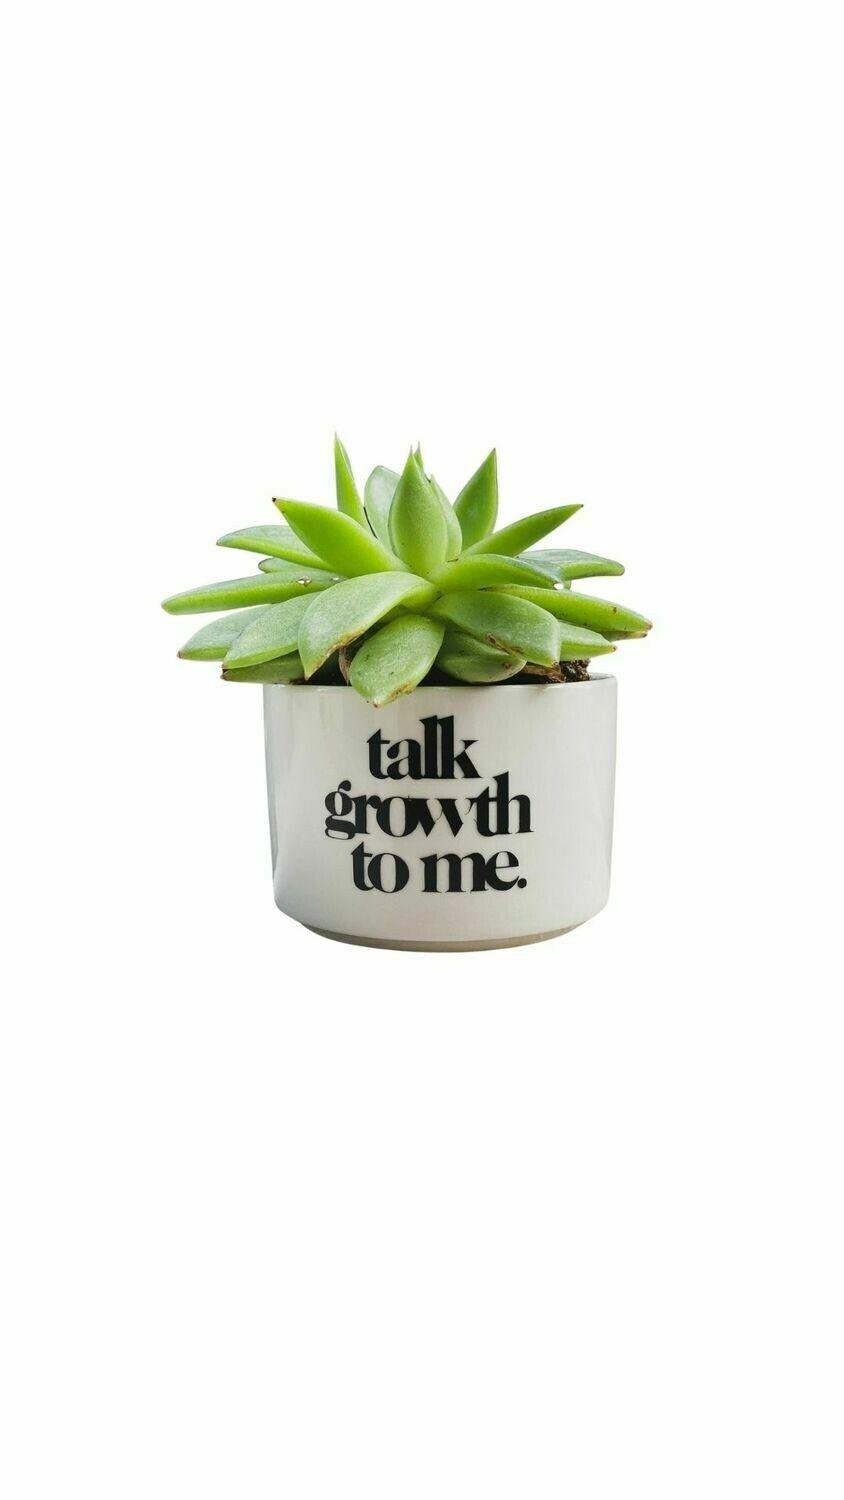 """<p><strong>Plant Economy</strong></p><p>planteconomy.company.site</p><p><strong>$15.00</strong></p><p><a href=""""https://planteconomy.company.site/Baby-Pot-Various-Styles-2-5%E2%80%9D-p276589481"""" rel=""""nofollow noopener"""" target=""""_blank"""" data-ylk=""""slk:Shop Now"""" class=""""link rapid-noclick-resp"""">Shop Now</a></p><p>Motivate them to bring some life into their space with this cute planter. It's made out of ceramic and features three different fun phrases to choose from. Our favorite one? """"Plant shawty!""""</p>"""